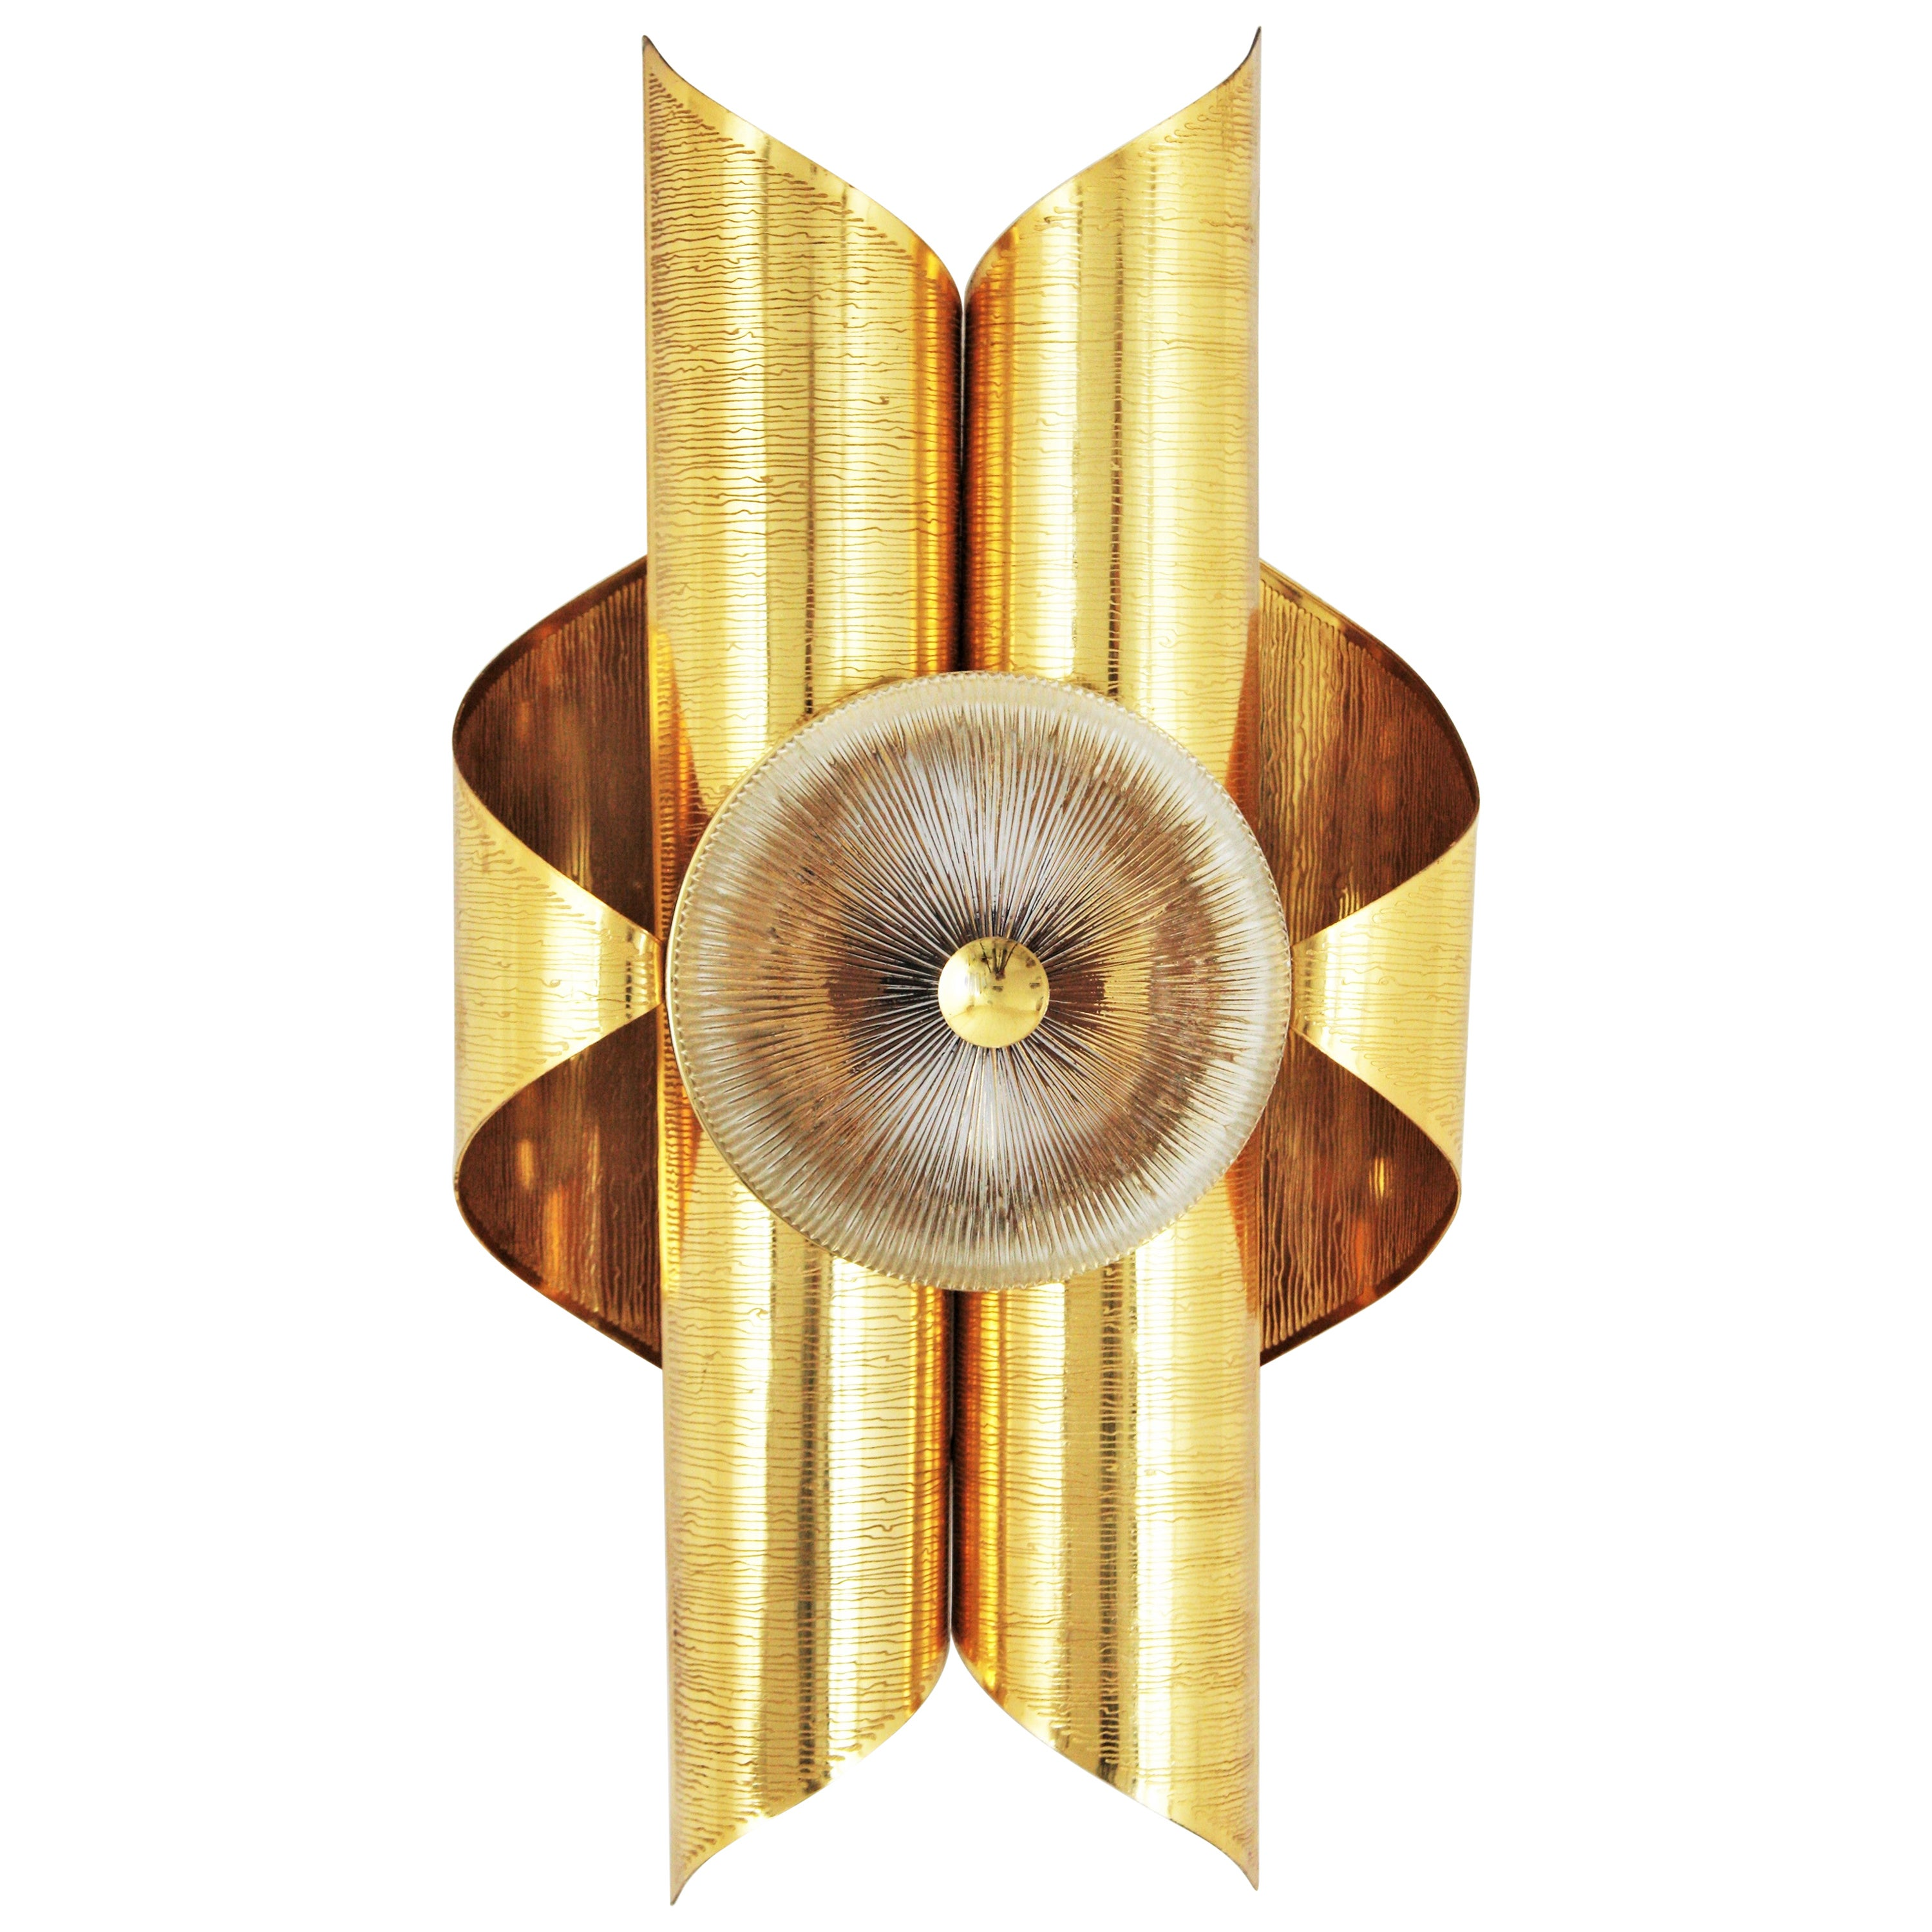 Sciolari Inspired Italian Modernist Gold-Plated Brass and Glass Wall Sconce